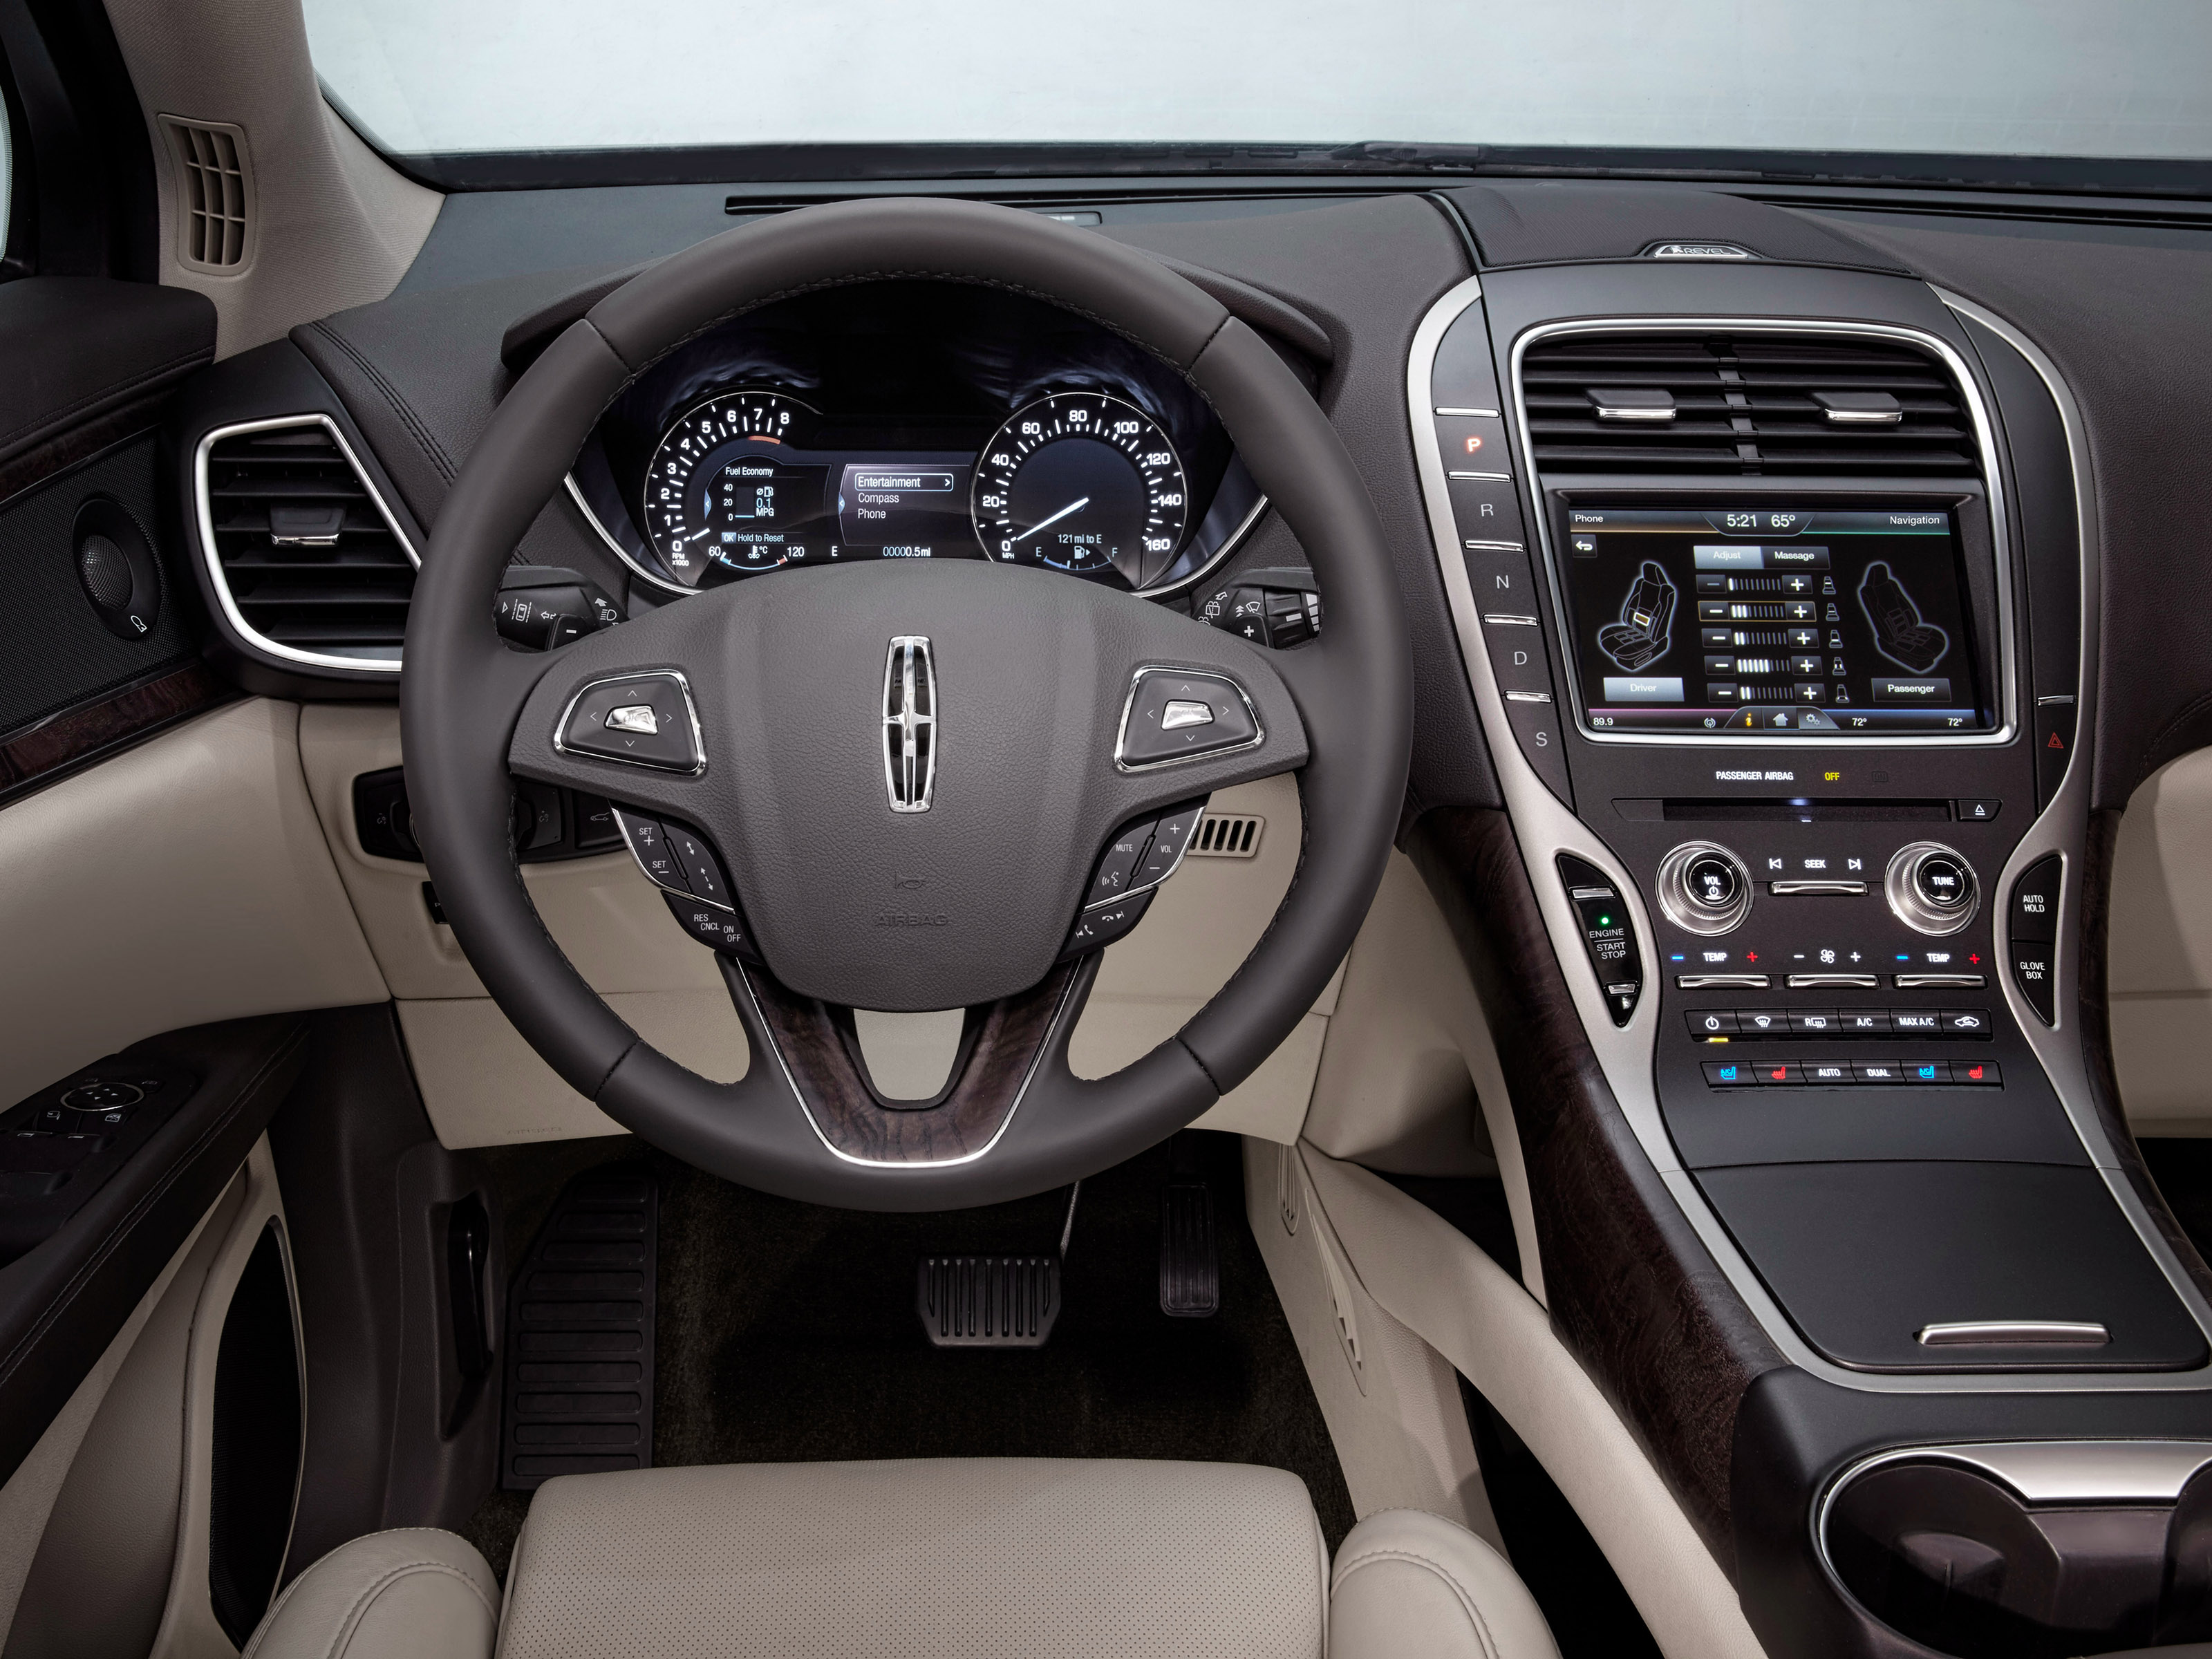 2015 Lincoln MKX Dashboard